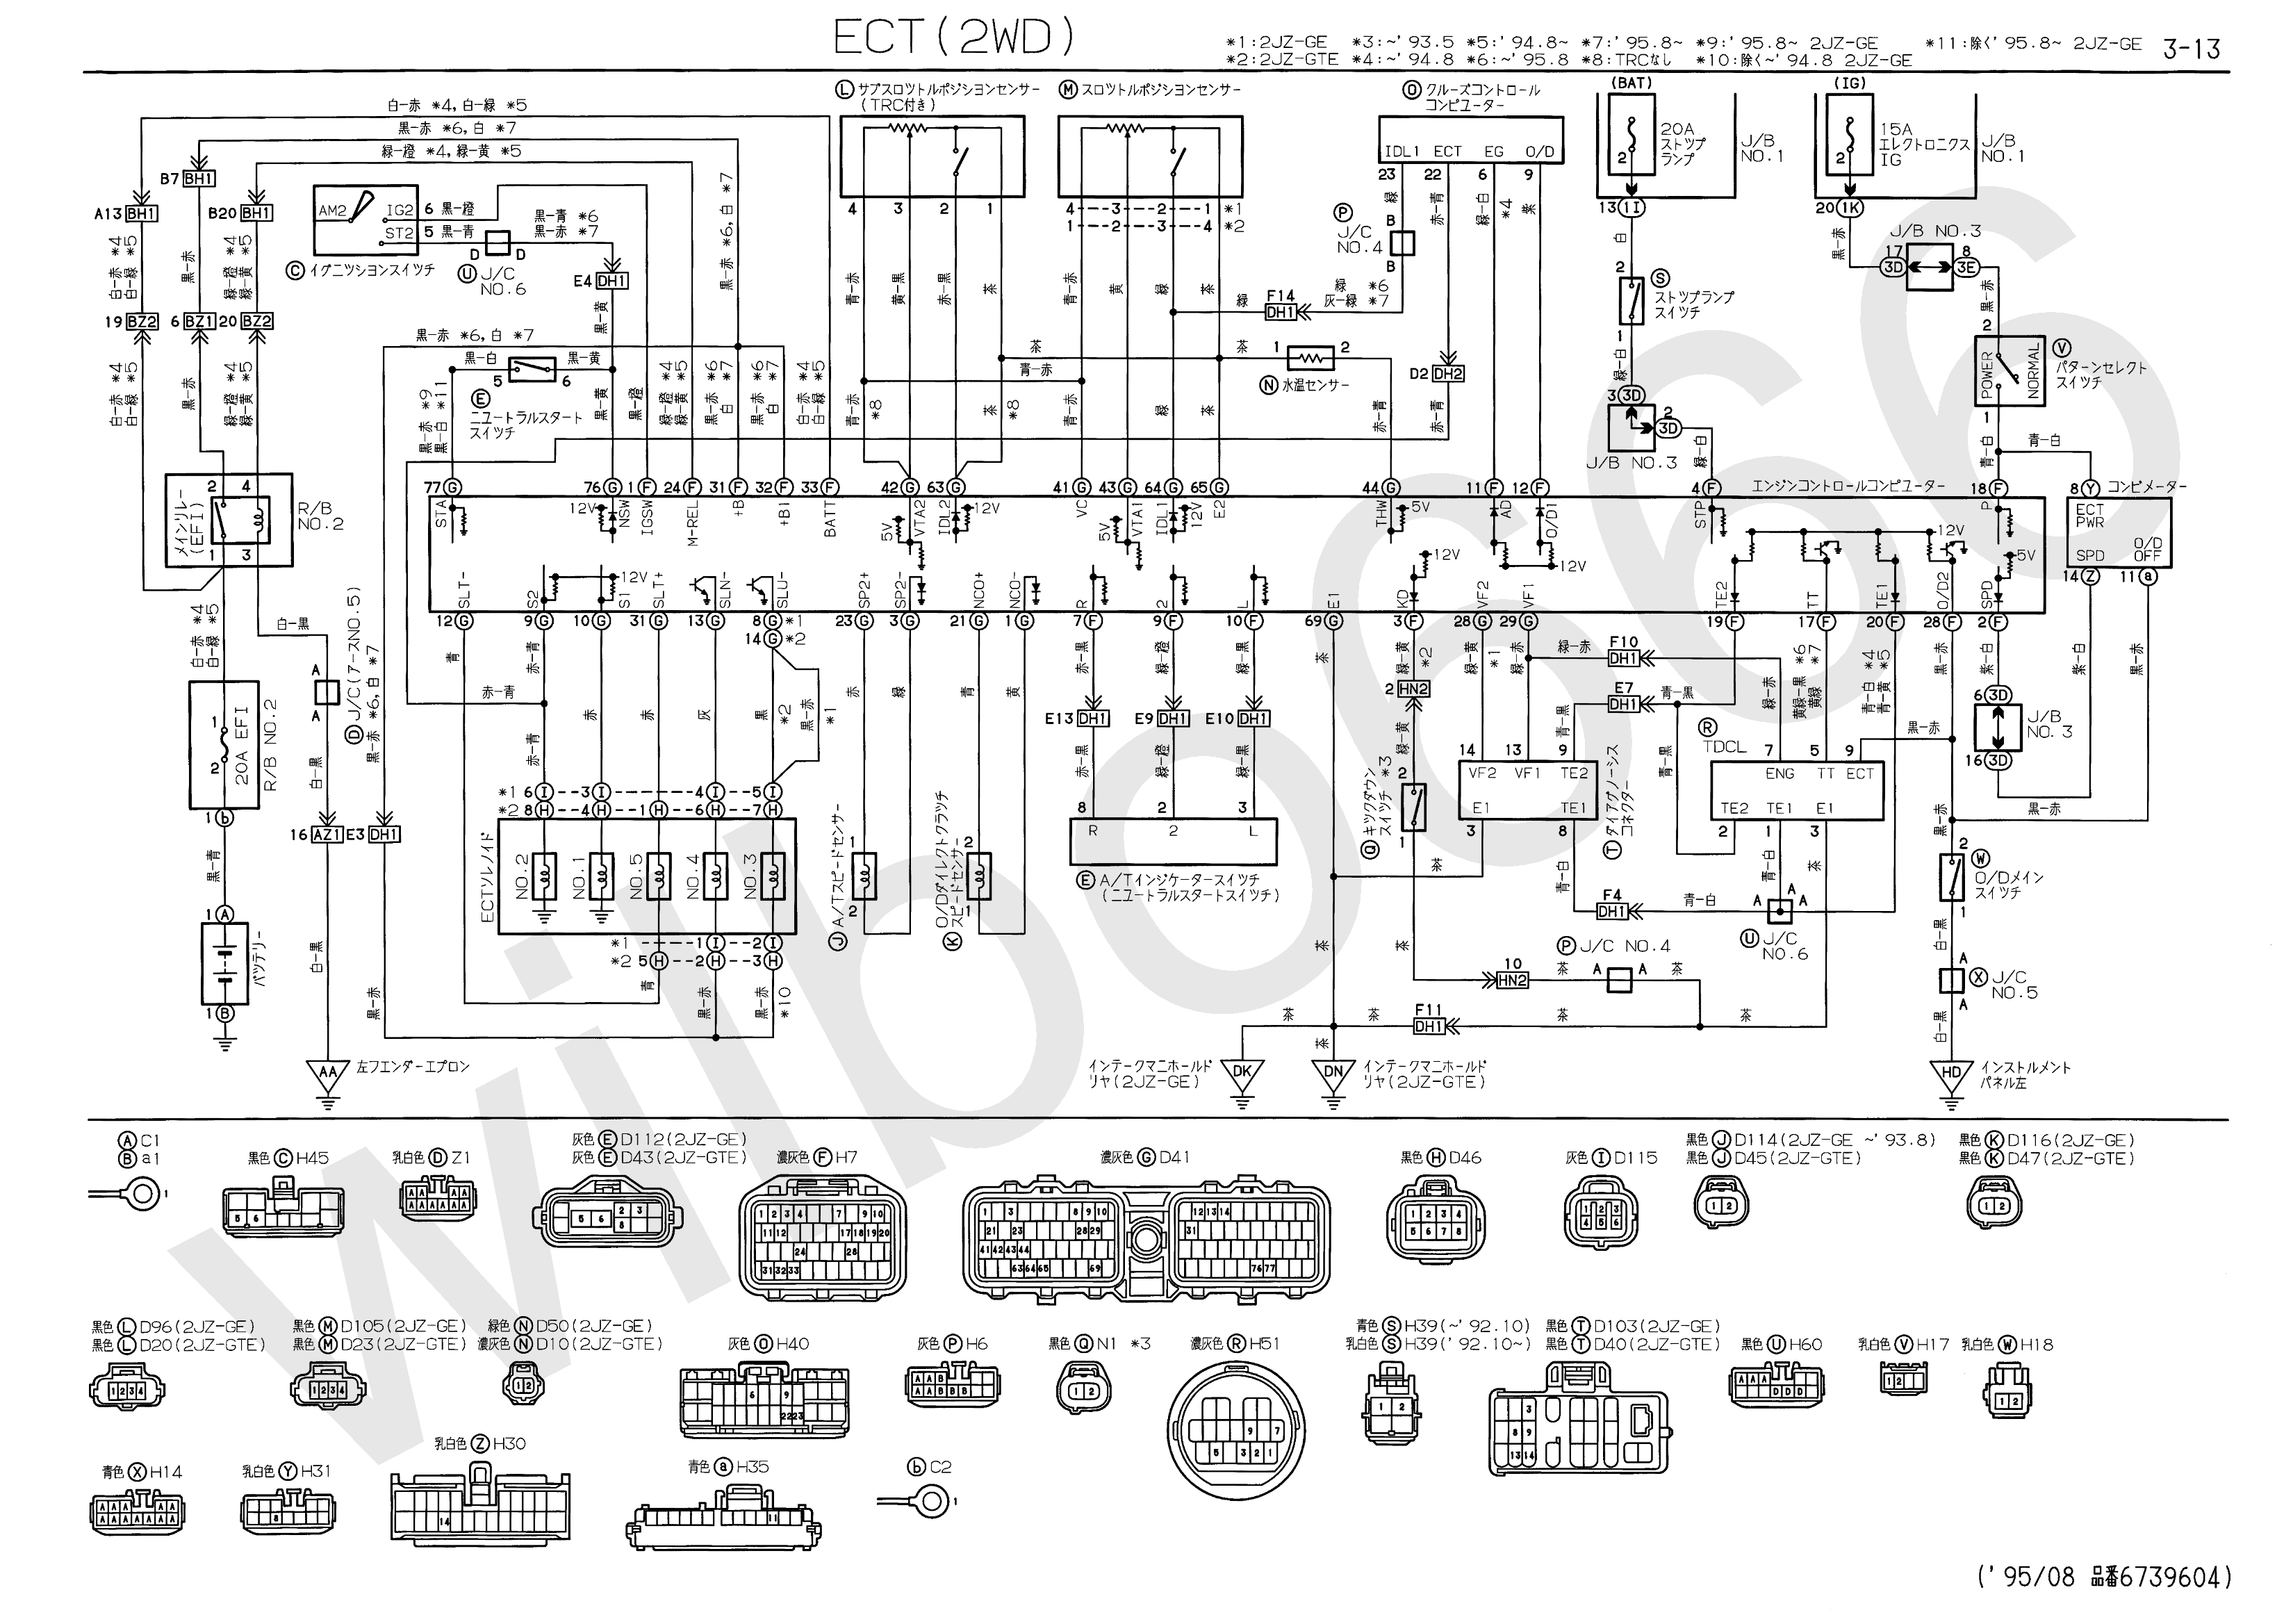 JZS14%23%2C+UZS14%23+Electrical+Wiring+Diagram+6739604+3 13 gs300 wiring diagram coleman furnace wiring diagram \u2022 free wiring 1999 lexus es300 wiring diagram at gsmportal.co